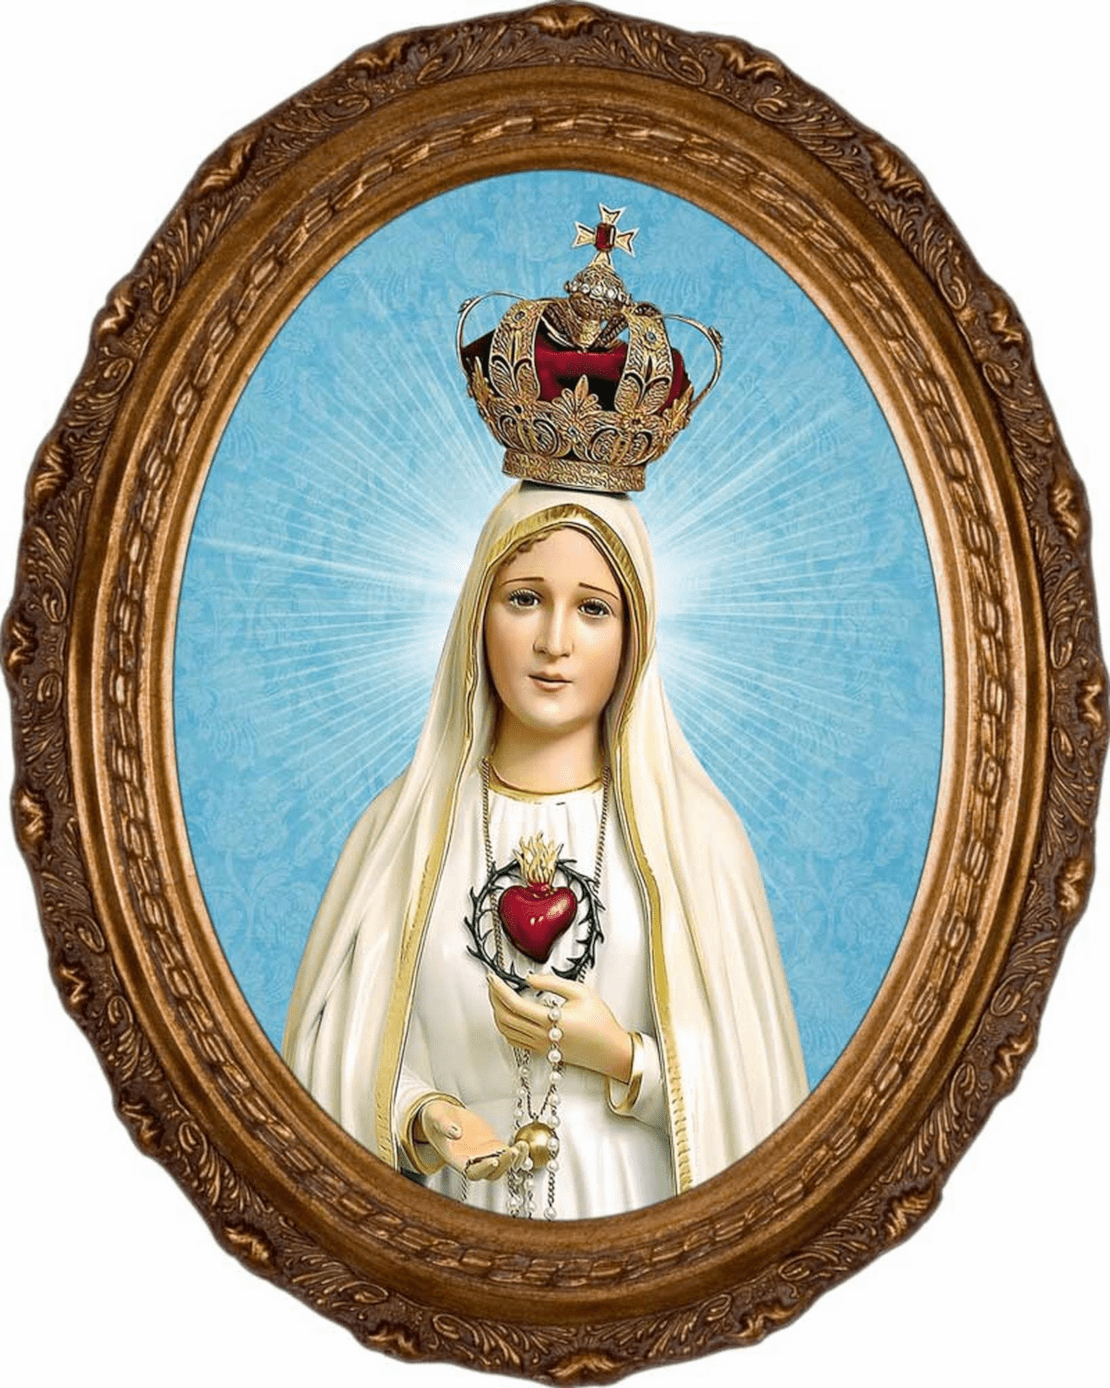 Nelson's Gifts Fatima 100 Year Anniversary Canvas in Oval Frame Wall Picture